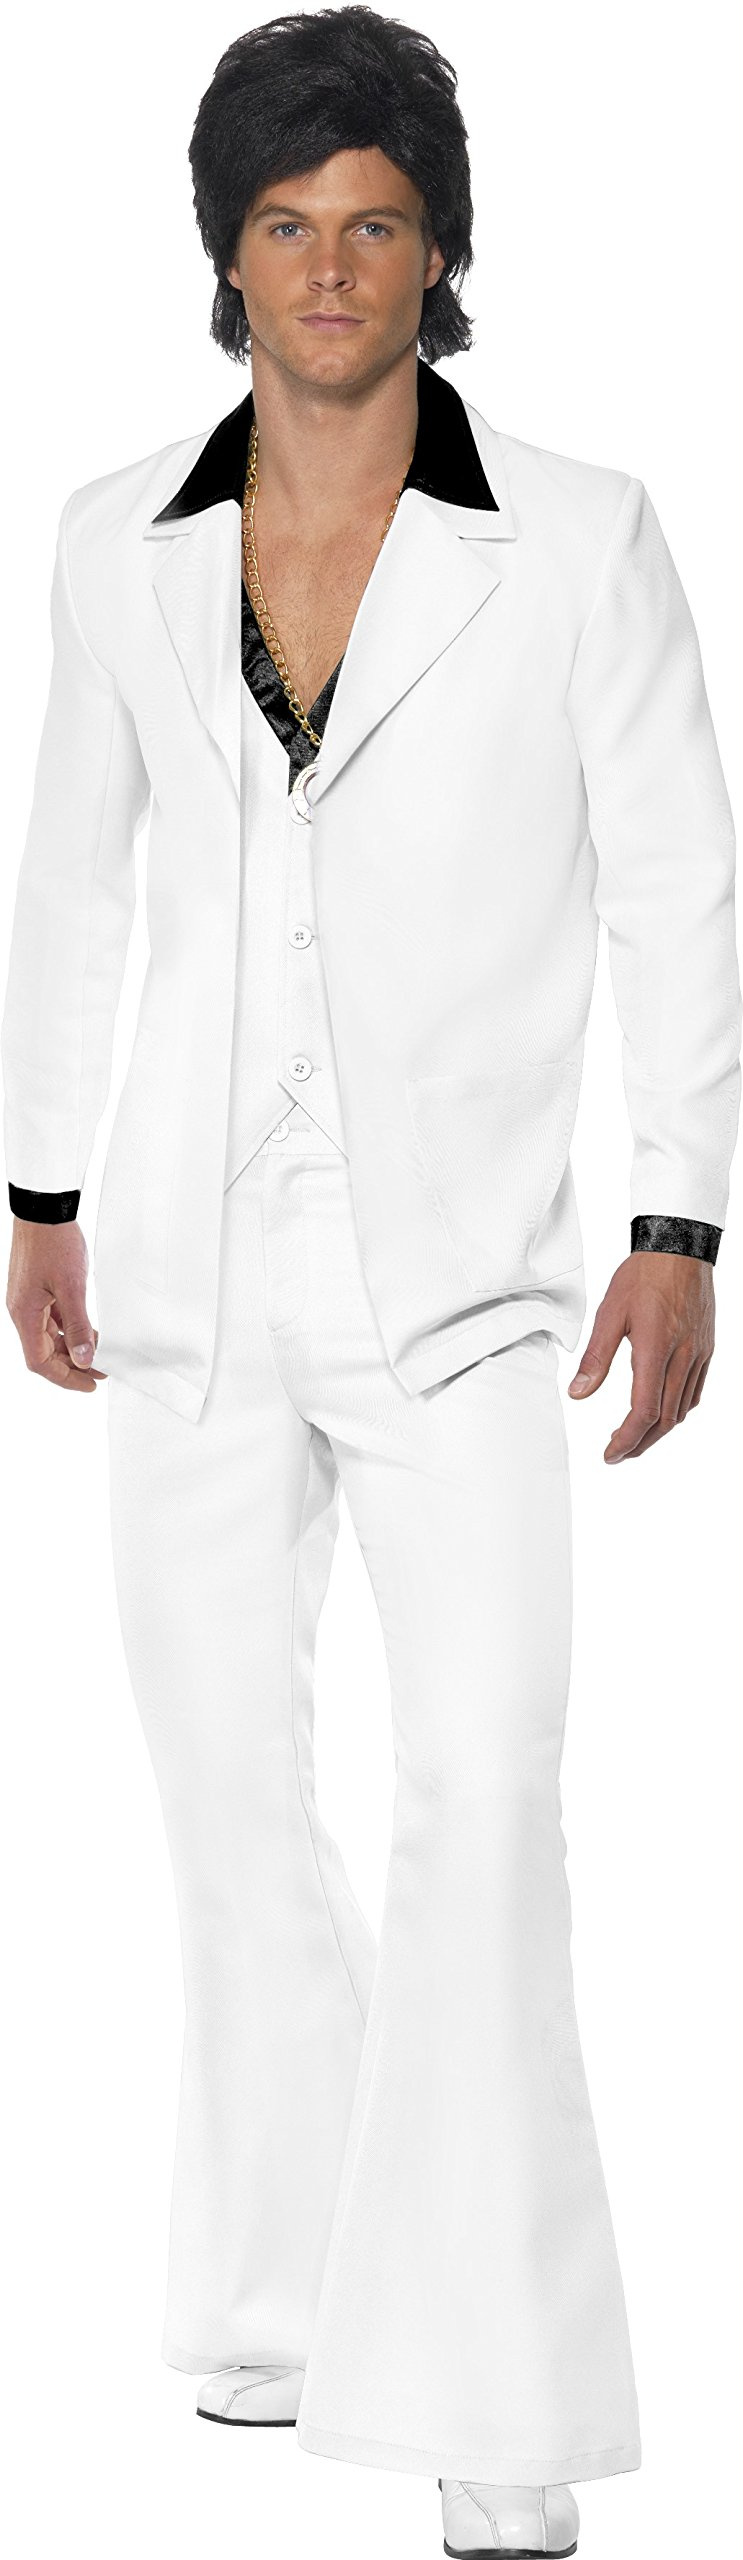 Smiffys Men's 1970's Suit Costume, Jacket With Mock Shirt and Waistcoat and pants, 70 Disco, Serious Fun, Size M, 39427